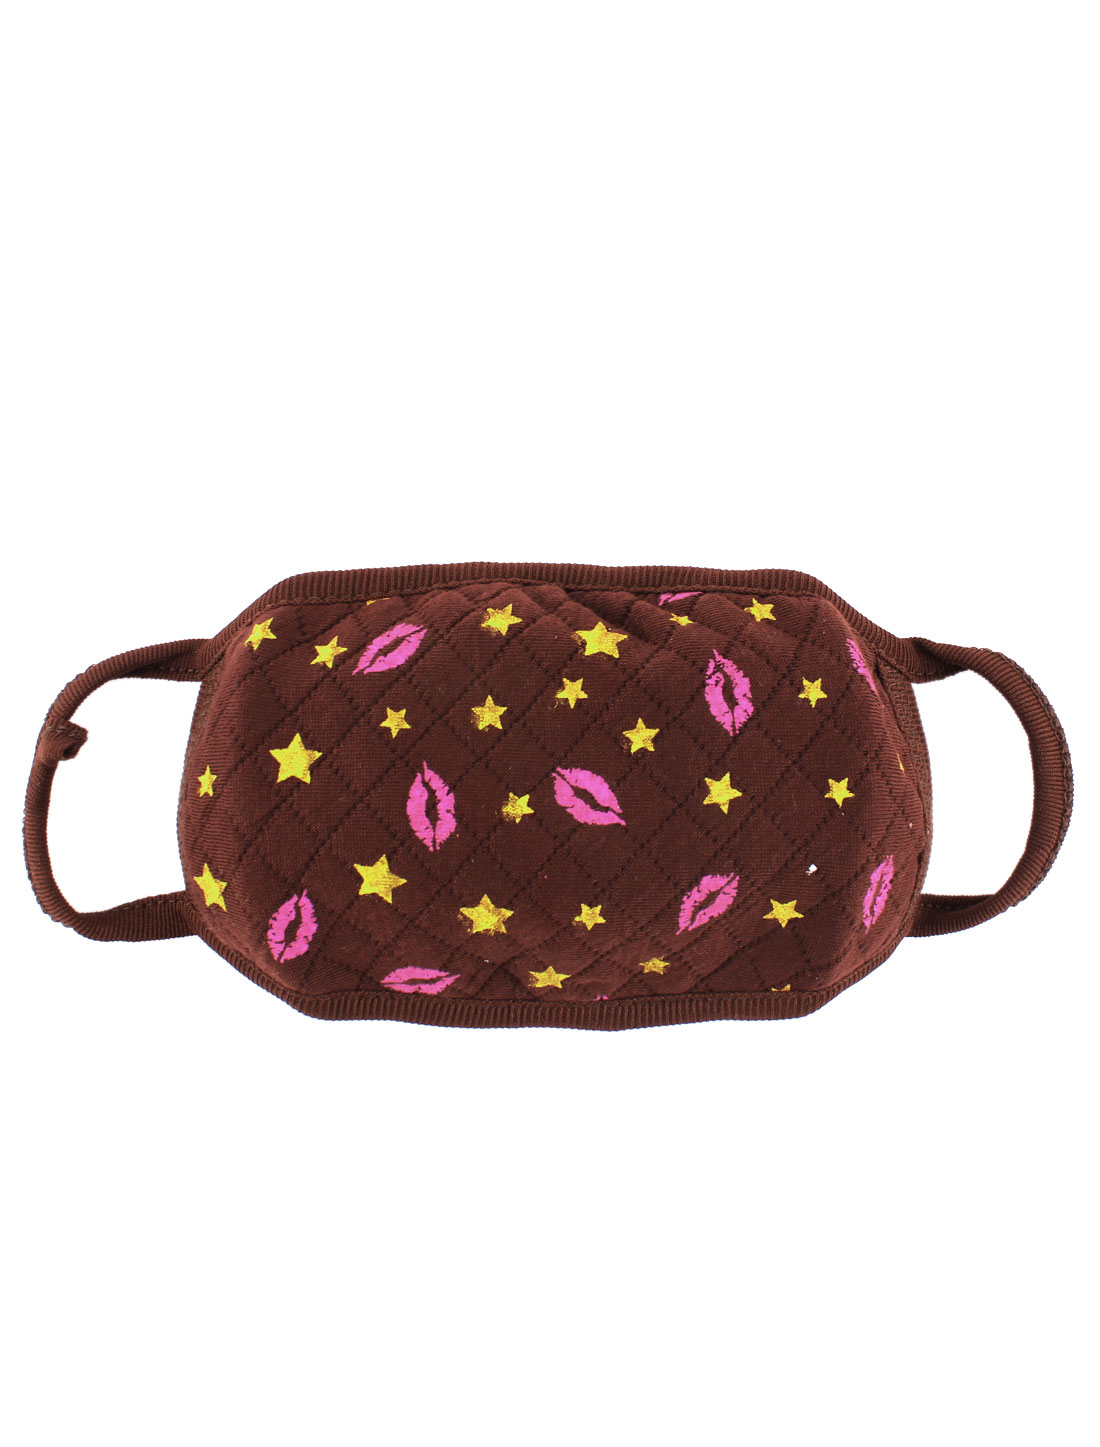 Lip Stars Pattern Dustproof Face Nose Mouth Mask Cover Respirator Protector Dark Brown